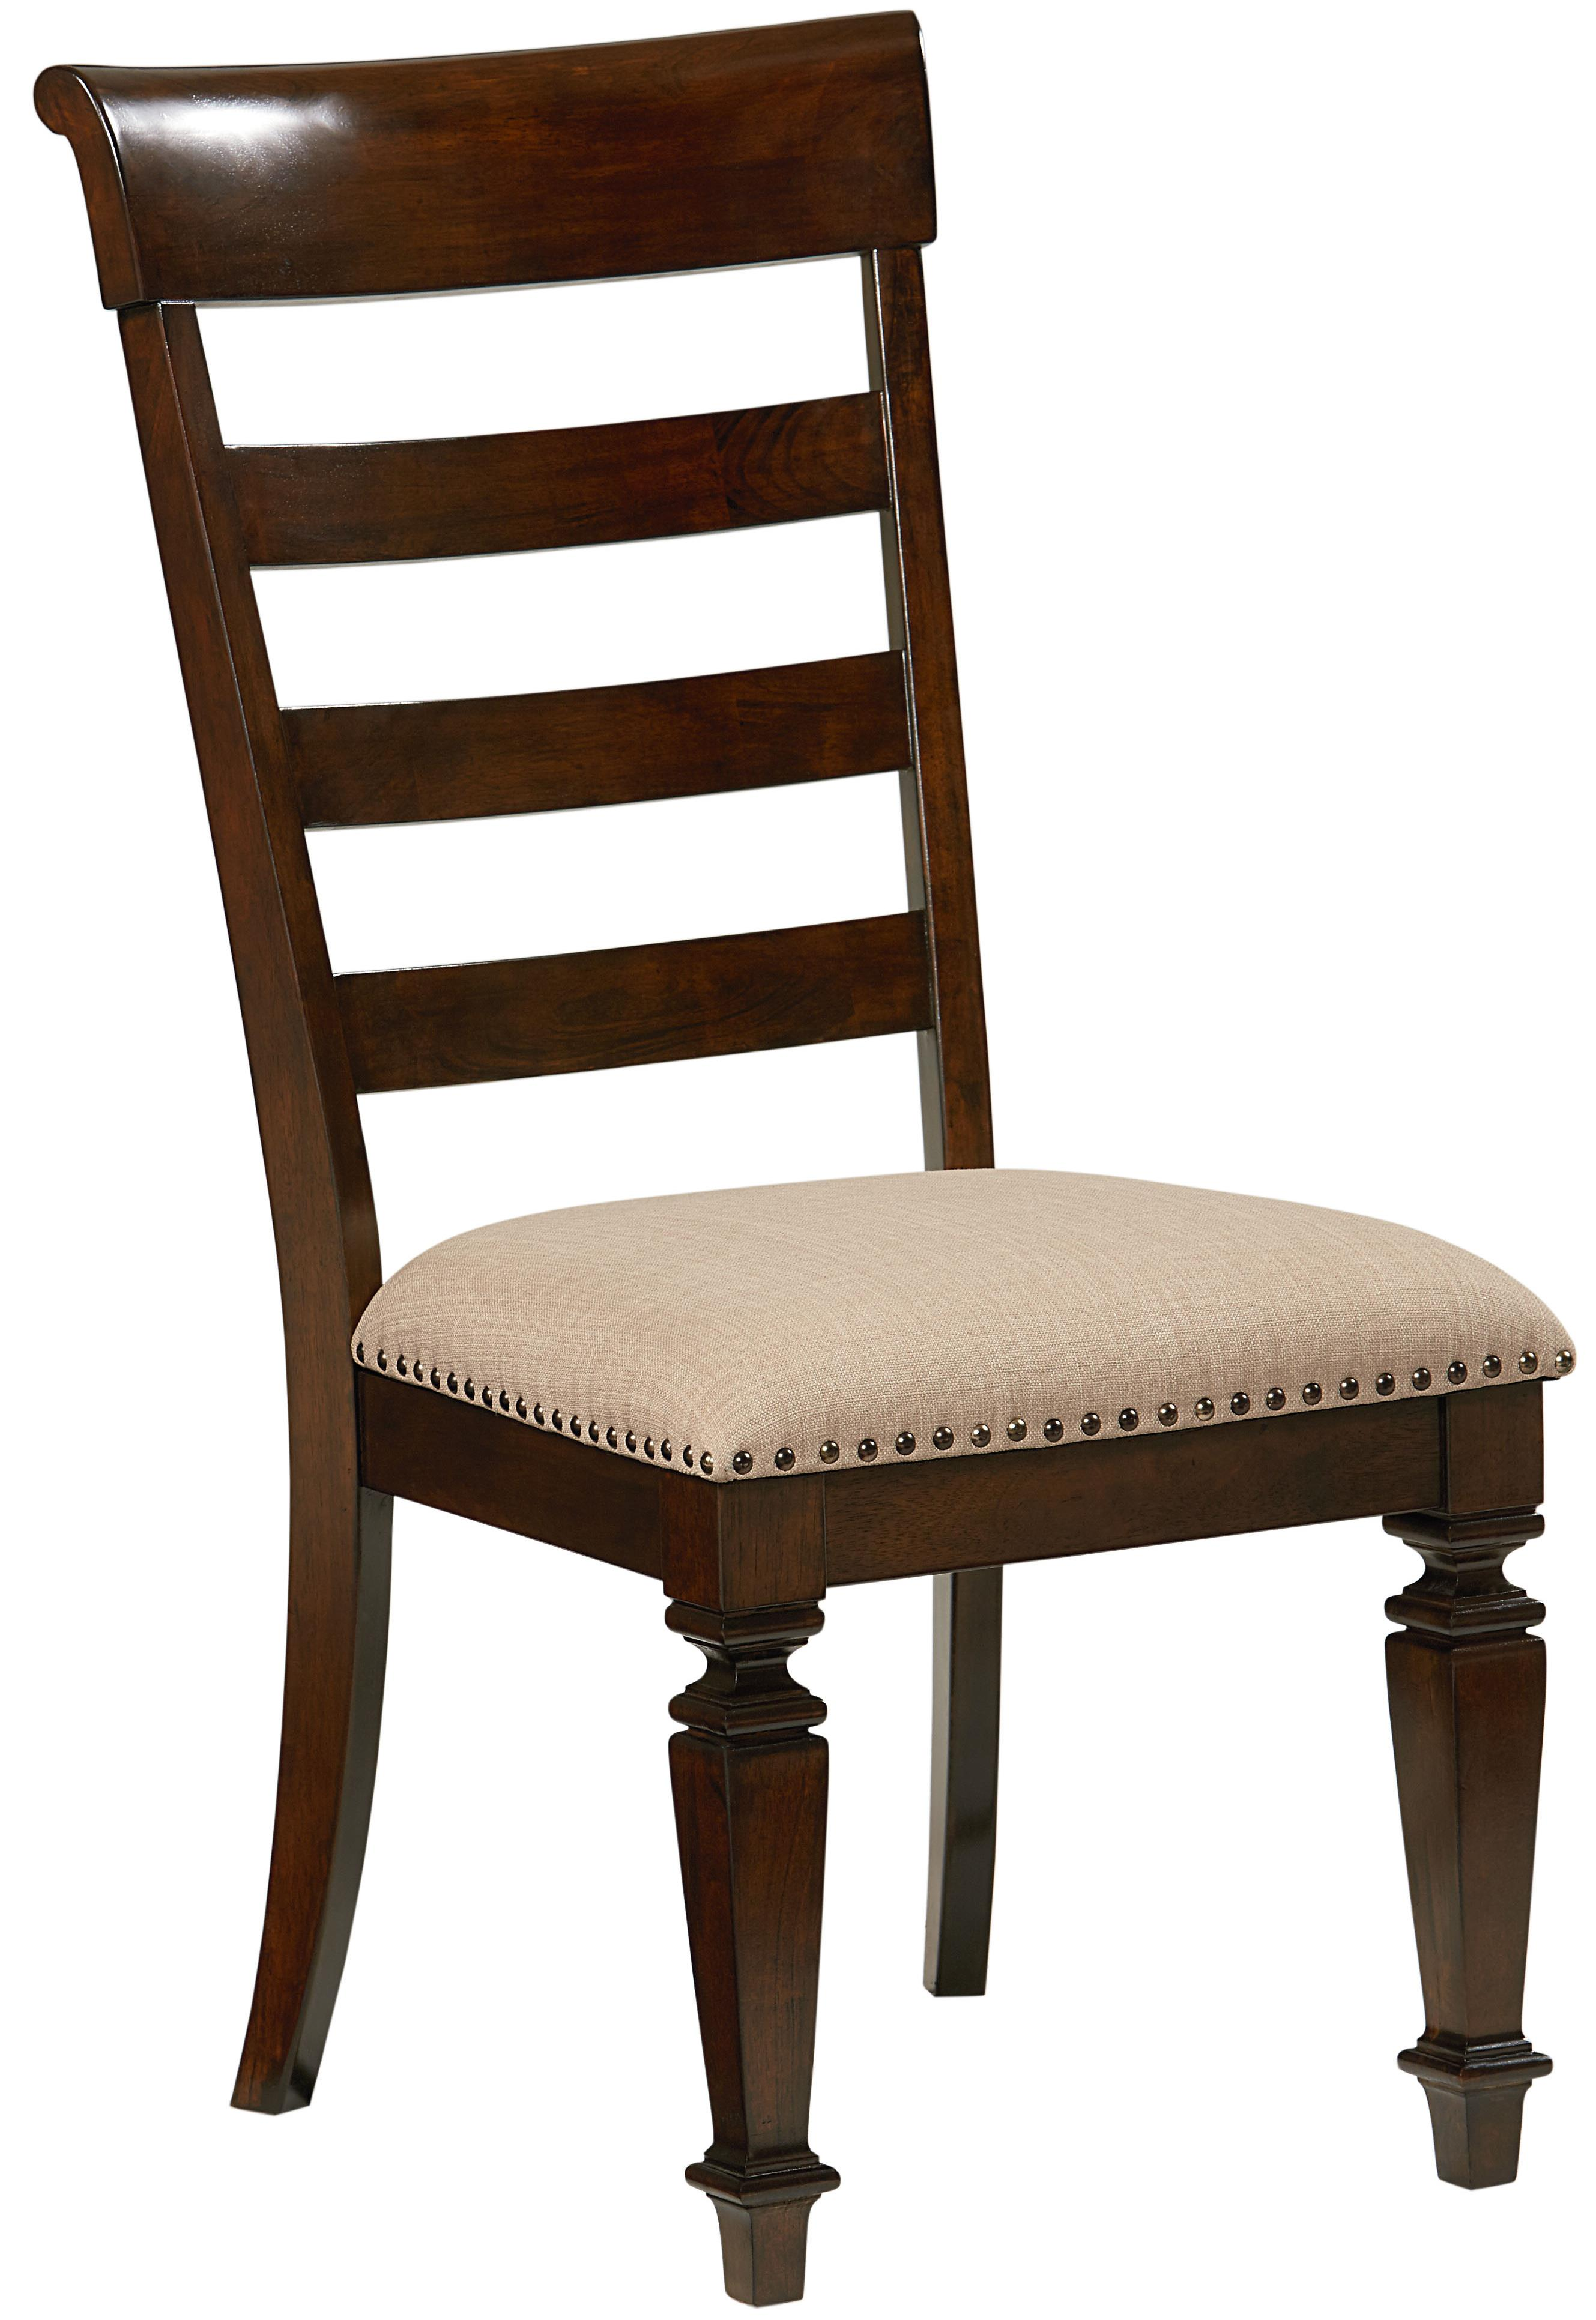 Standard Furniture Charleston Side Chair               - Item Number: 16724